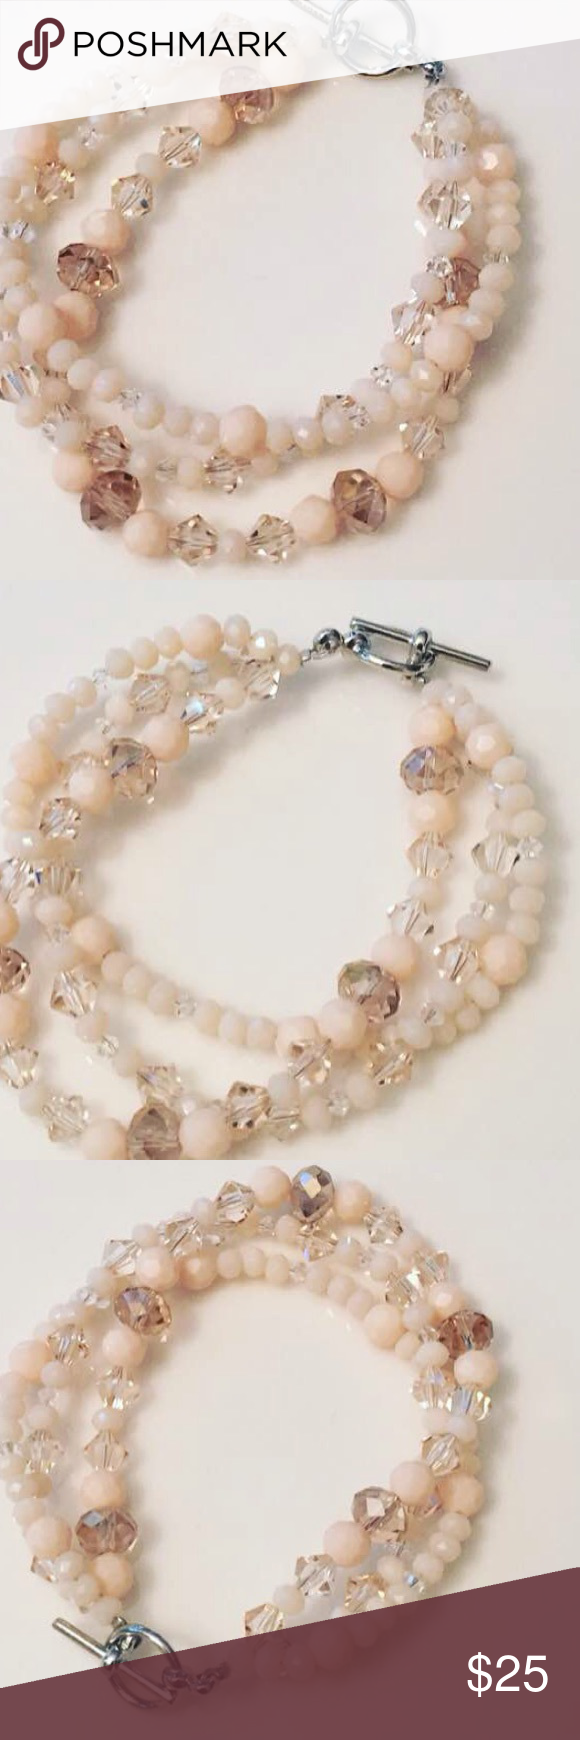 Champagne Beaded Bracelet Bracelet: three strands of clear & champagne crystal beads & beads in shades of champagne & ecru MADE Jewelry Bracelets